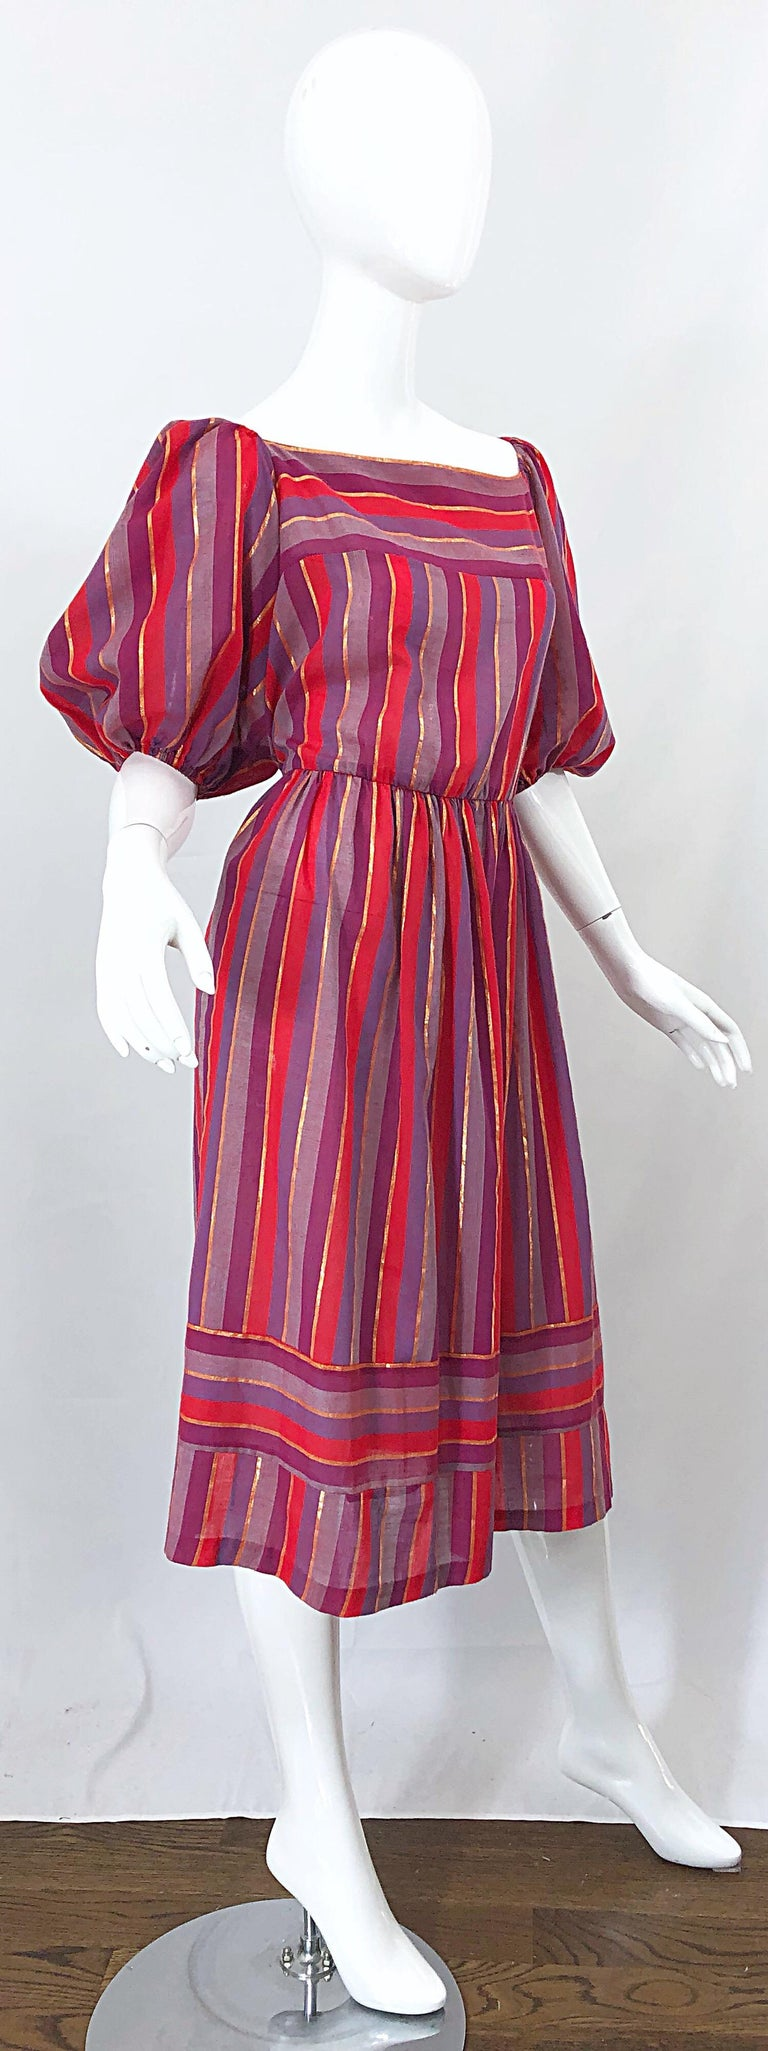 1970s Boho Chic Red + Purple + Gold Striped Cotton Voile 70s Vintage Dress For Sale 4